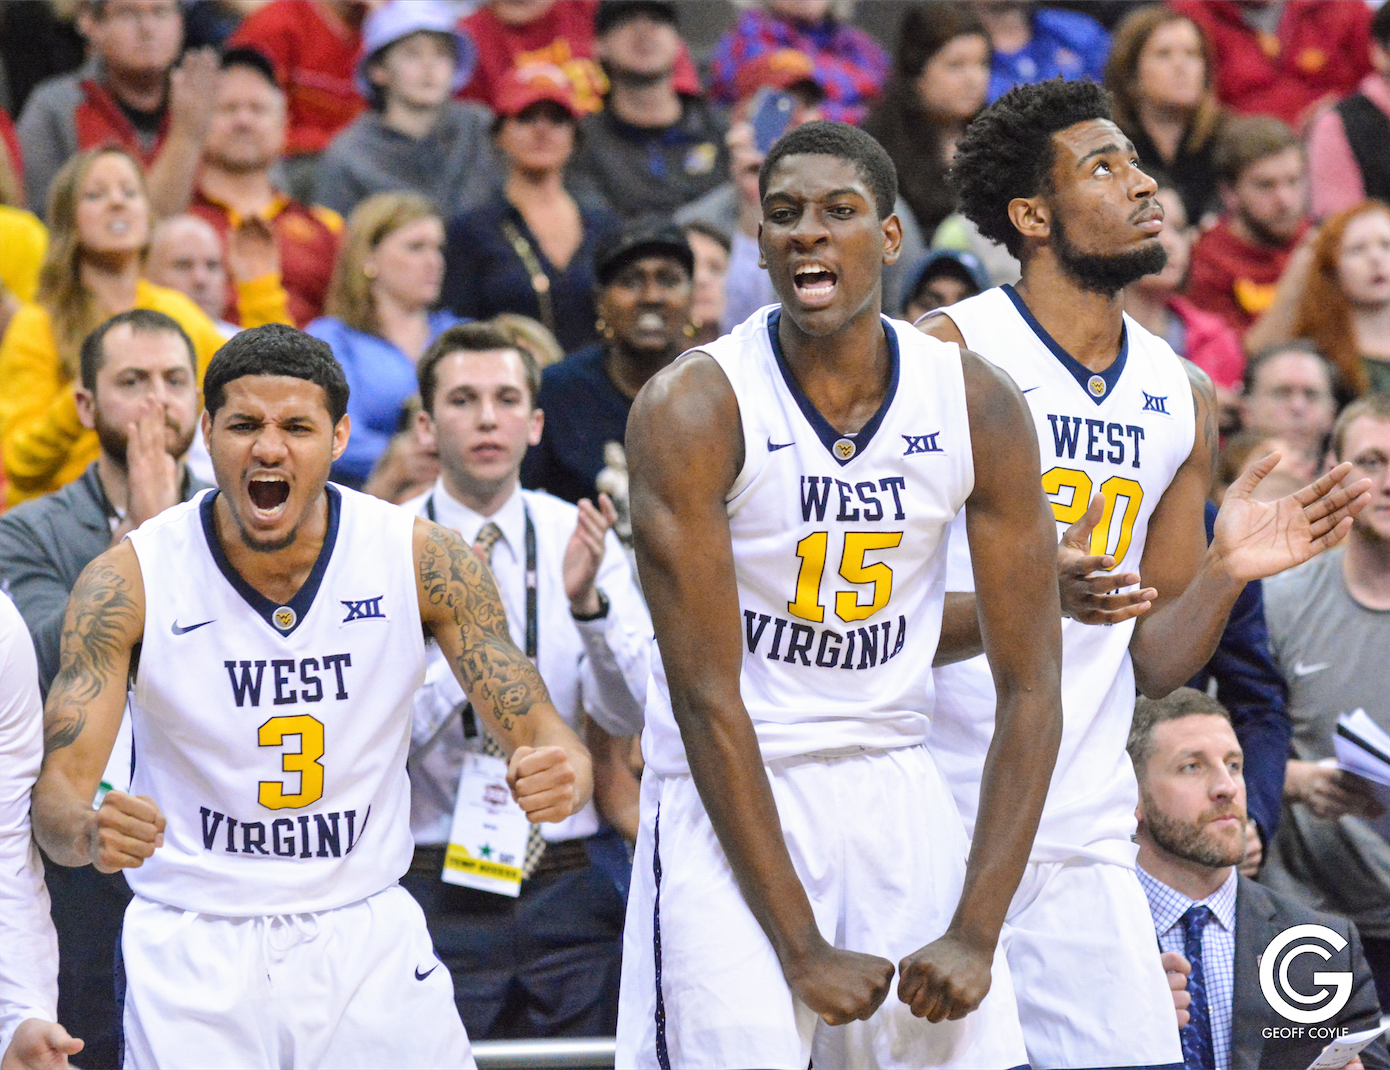 The WVU bench erupts as the Mountaineers attempt a late comeback in the Big 12 championship game. (PHOTO: Geoff Coyle)